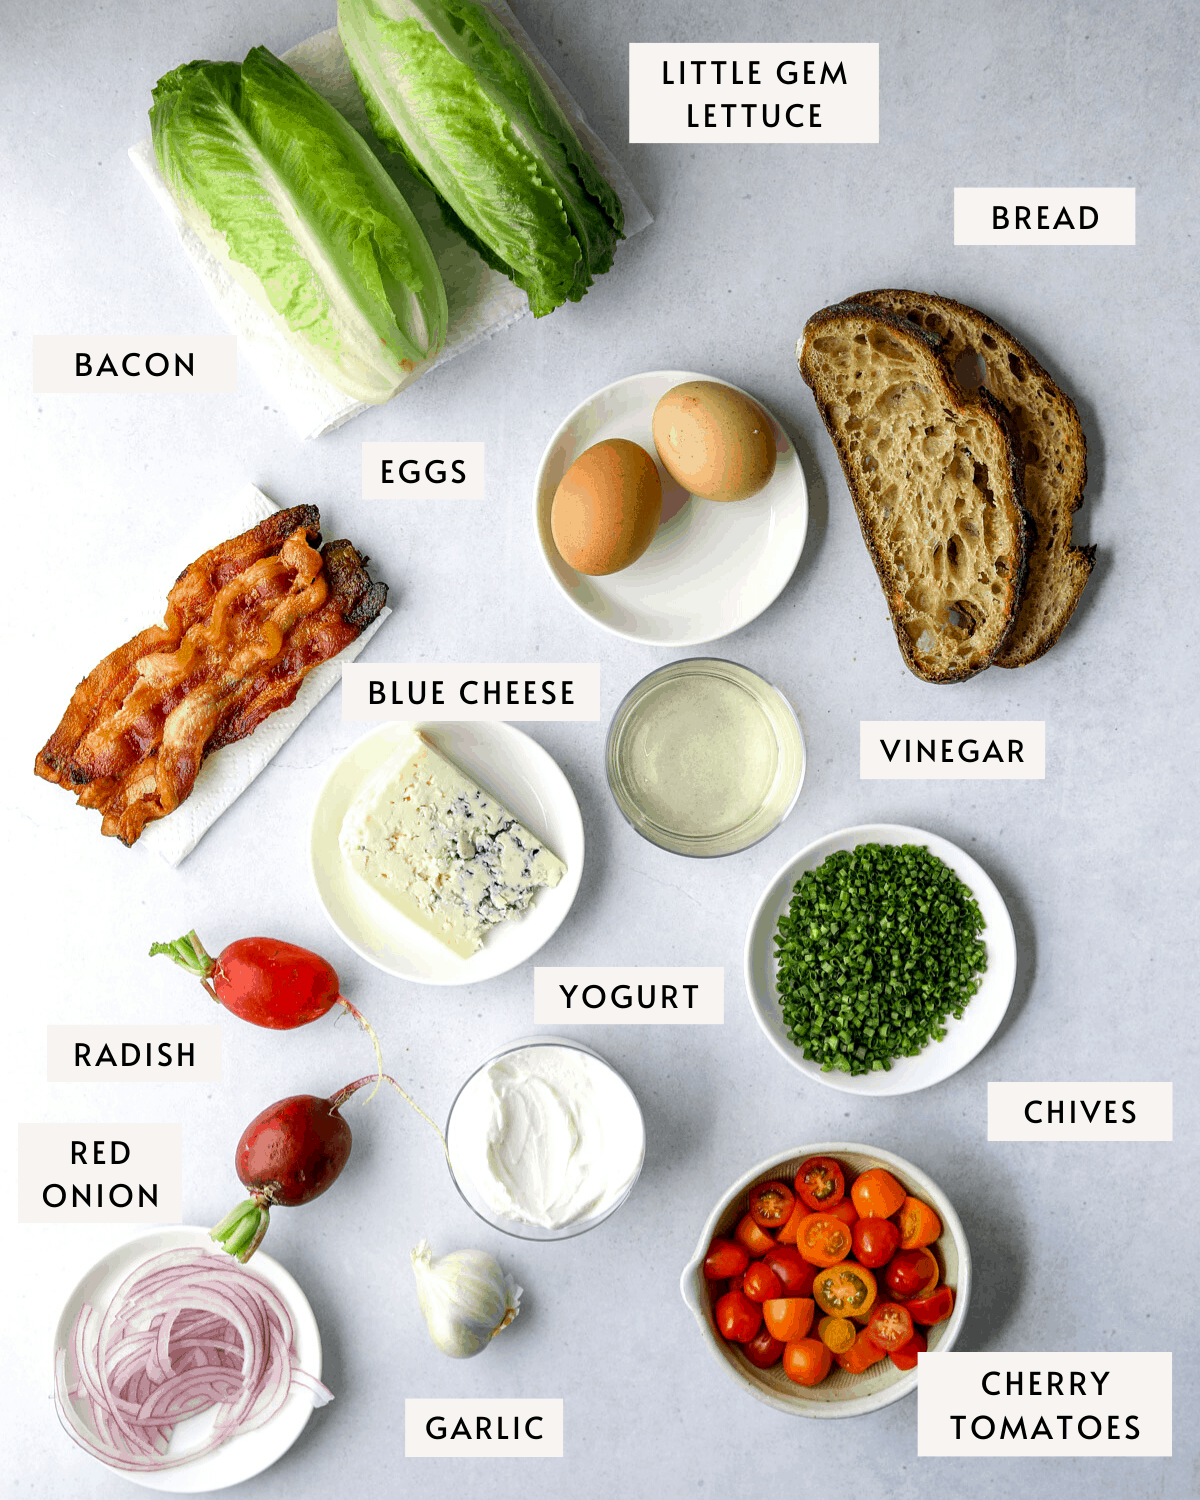 recipe ingredients on a blue background, bread, lettuce, hard boiled eggs, yogurt, bacon, cherry tomatoes, and chives.